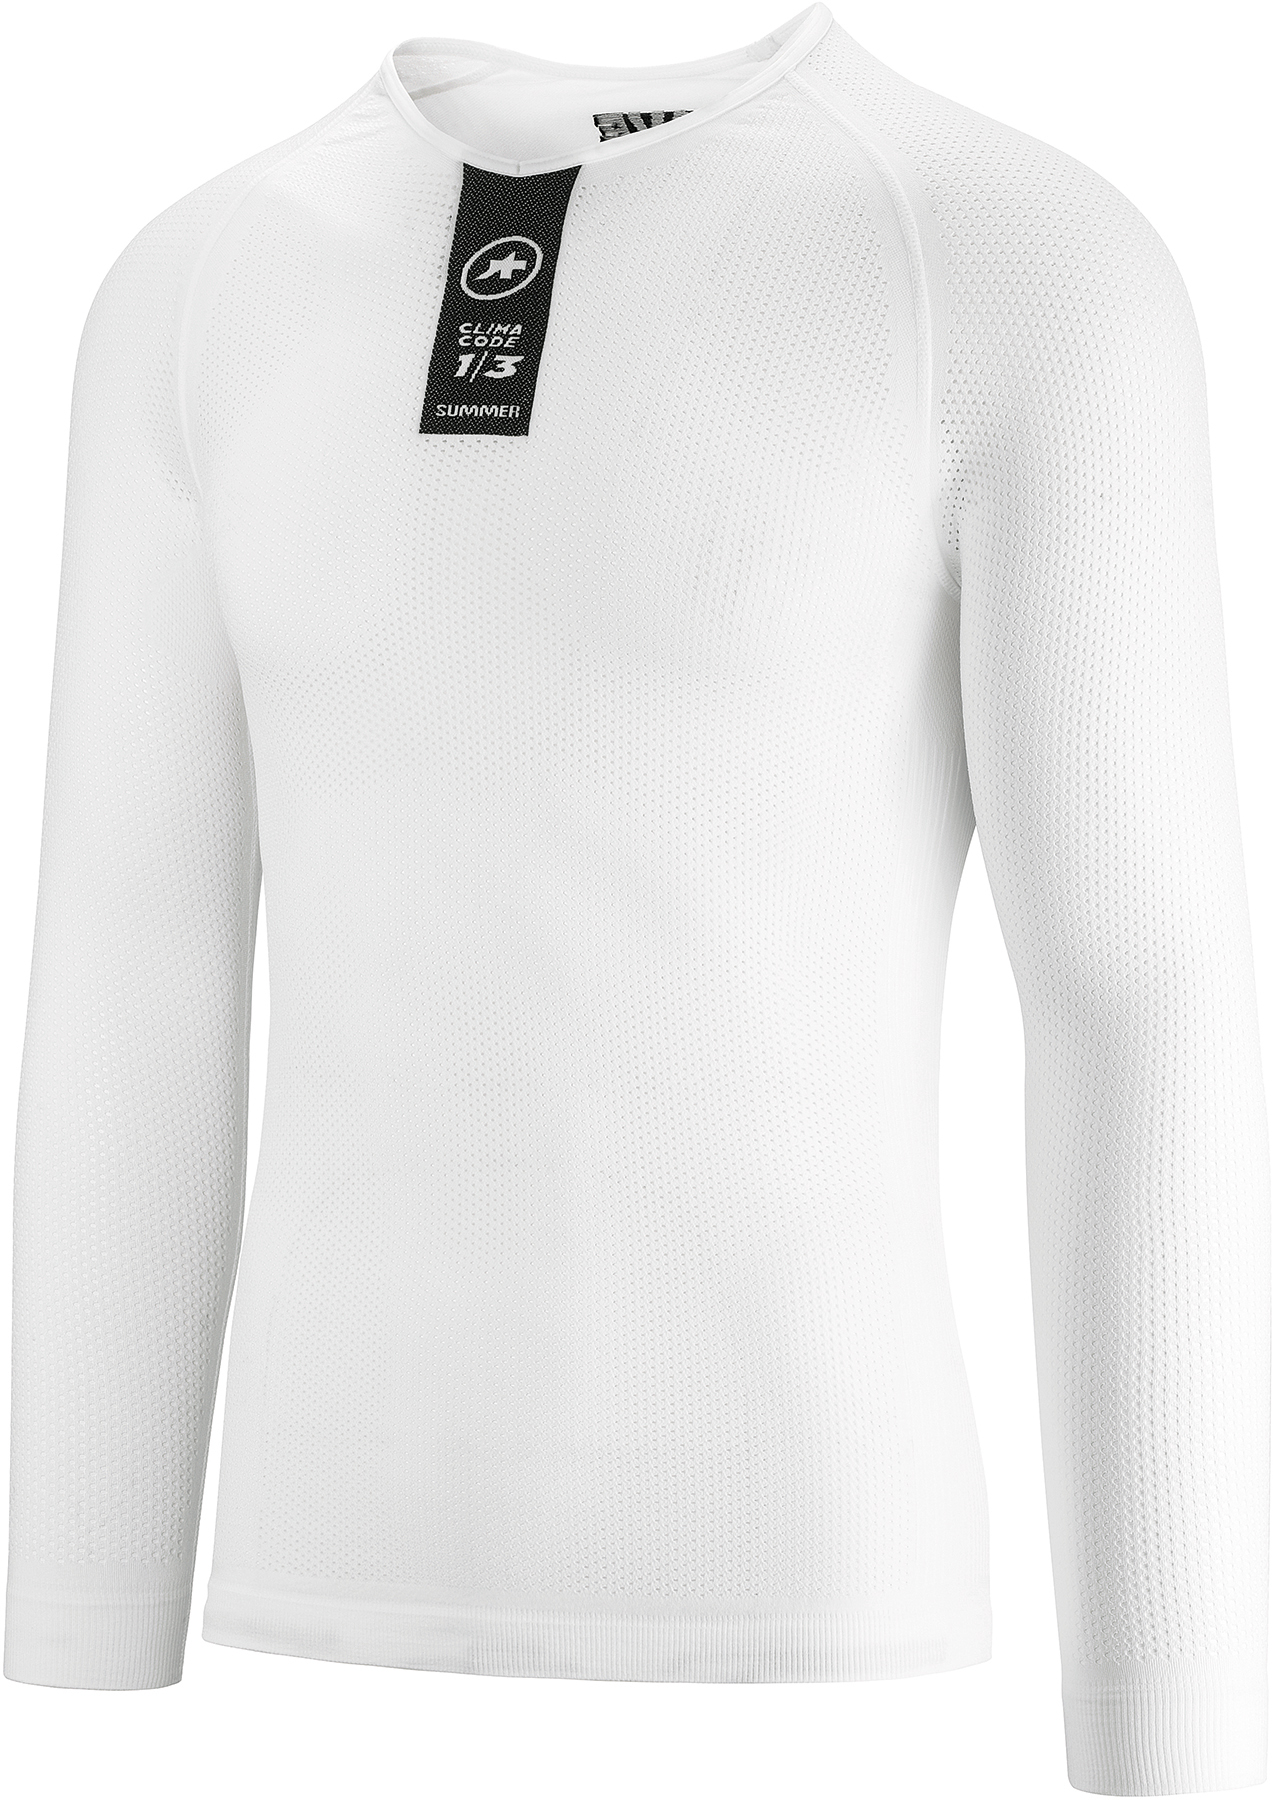 Assos Skinfoil LS Summer Base Layer | Base layers